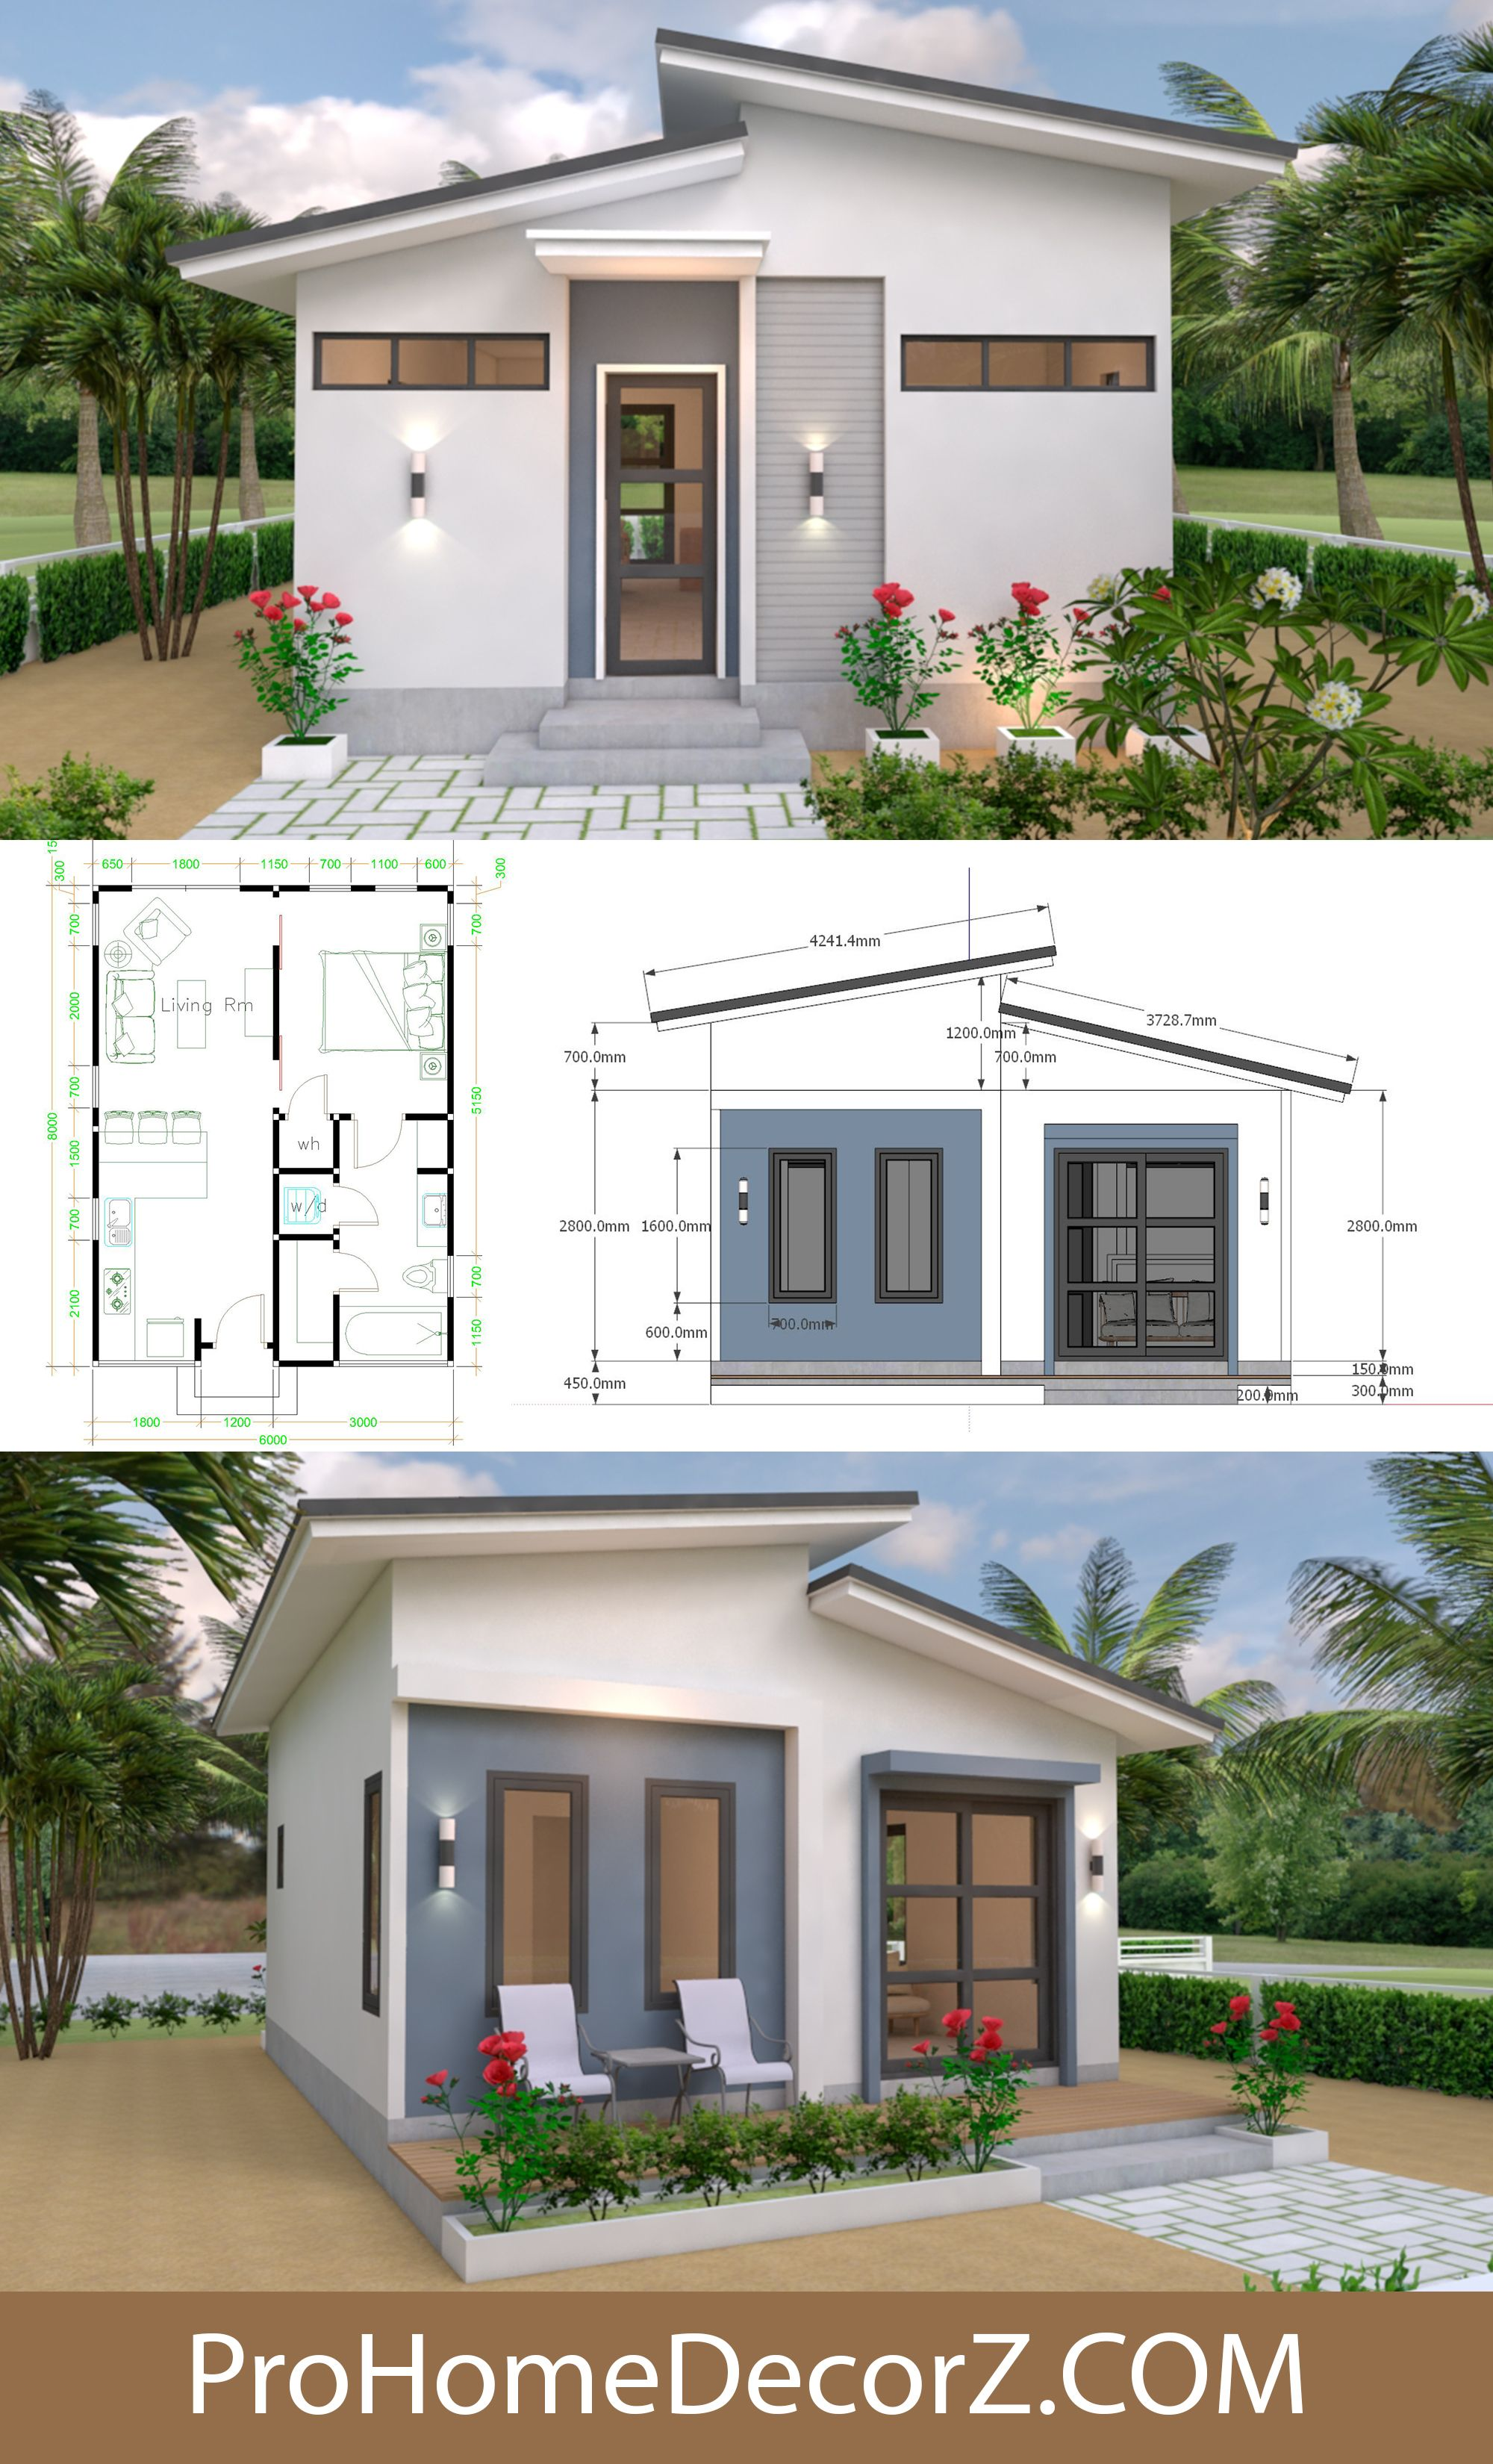 Small House 6x8 Shed Roof Full Plans 48sq M Two Story House Design Modern House Plans Small House Layout